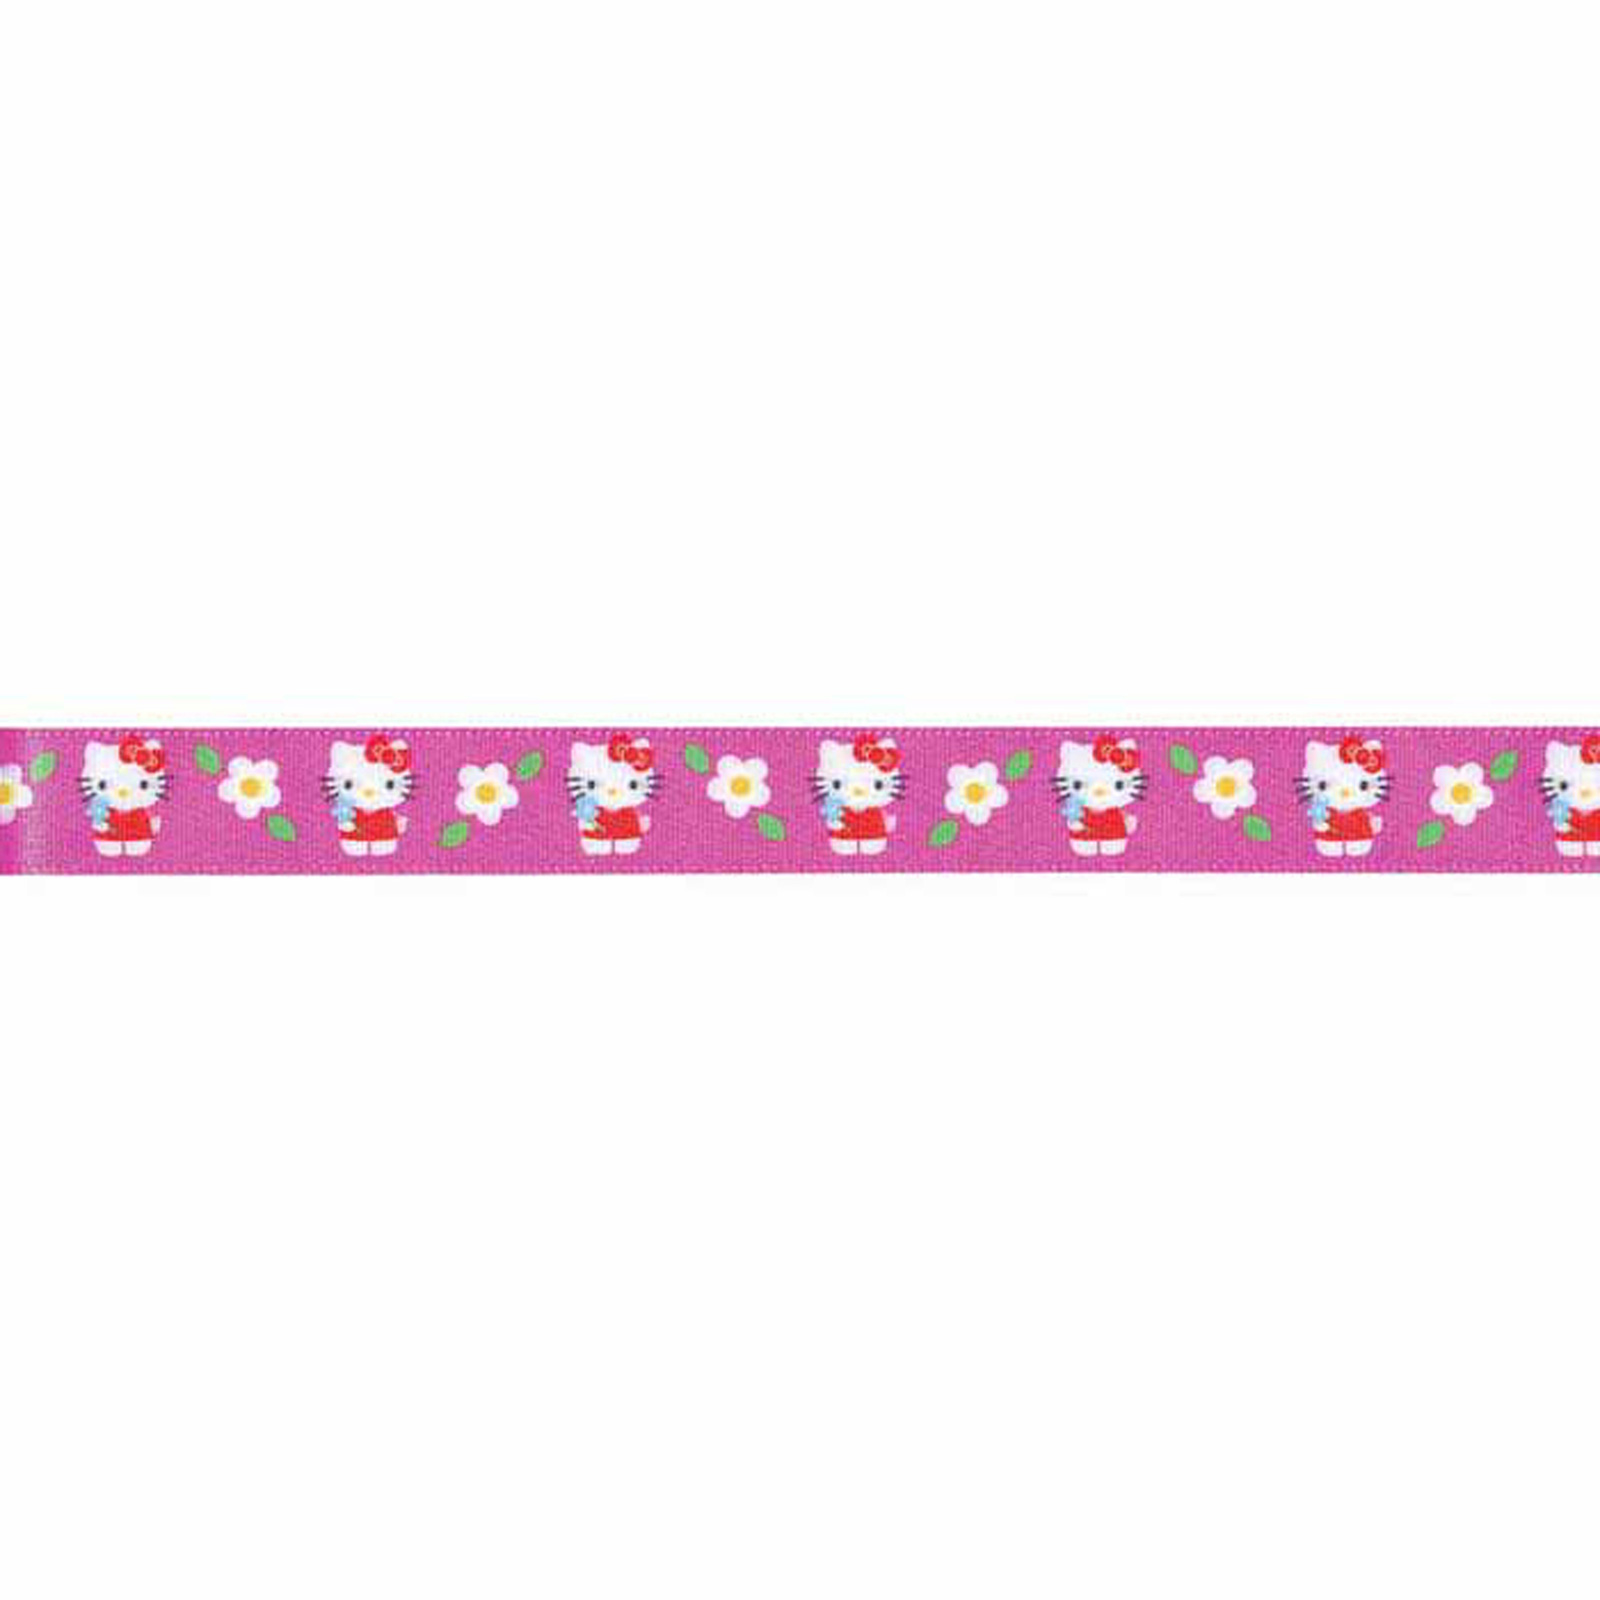 7/8'' Hello Kitty Ribbon Hot Pink by Stardom Specialty in USA